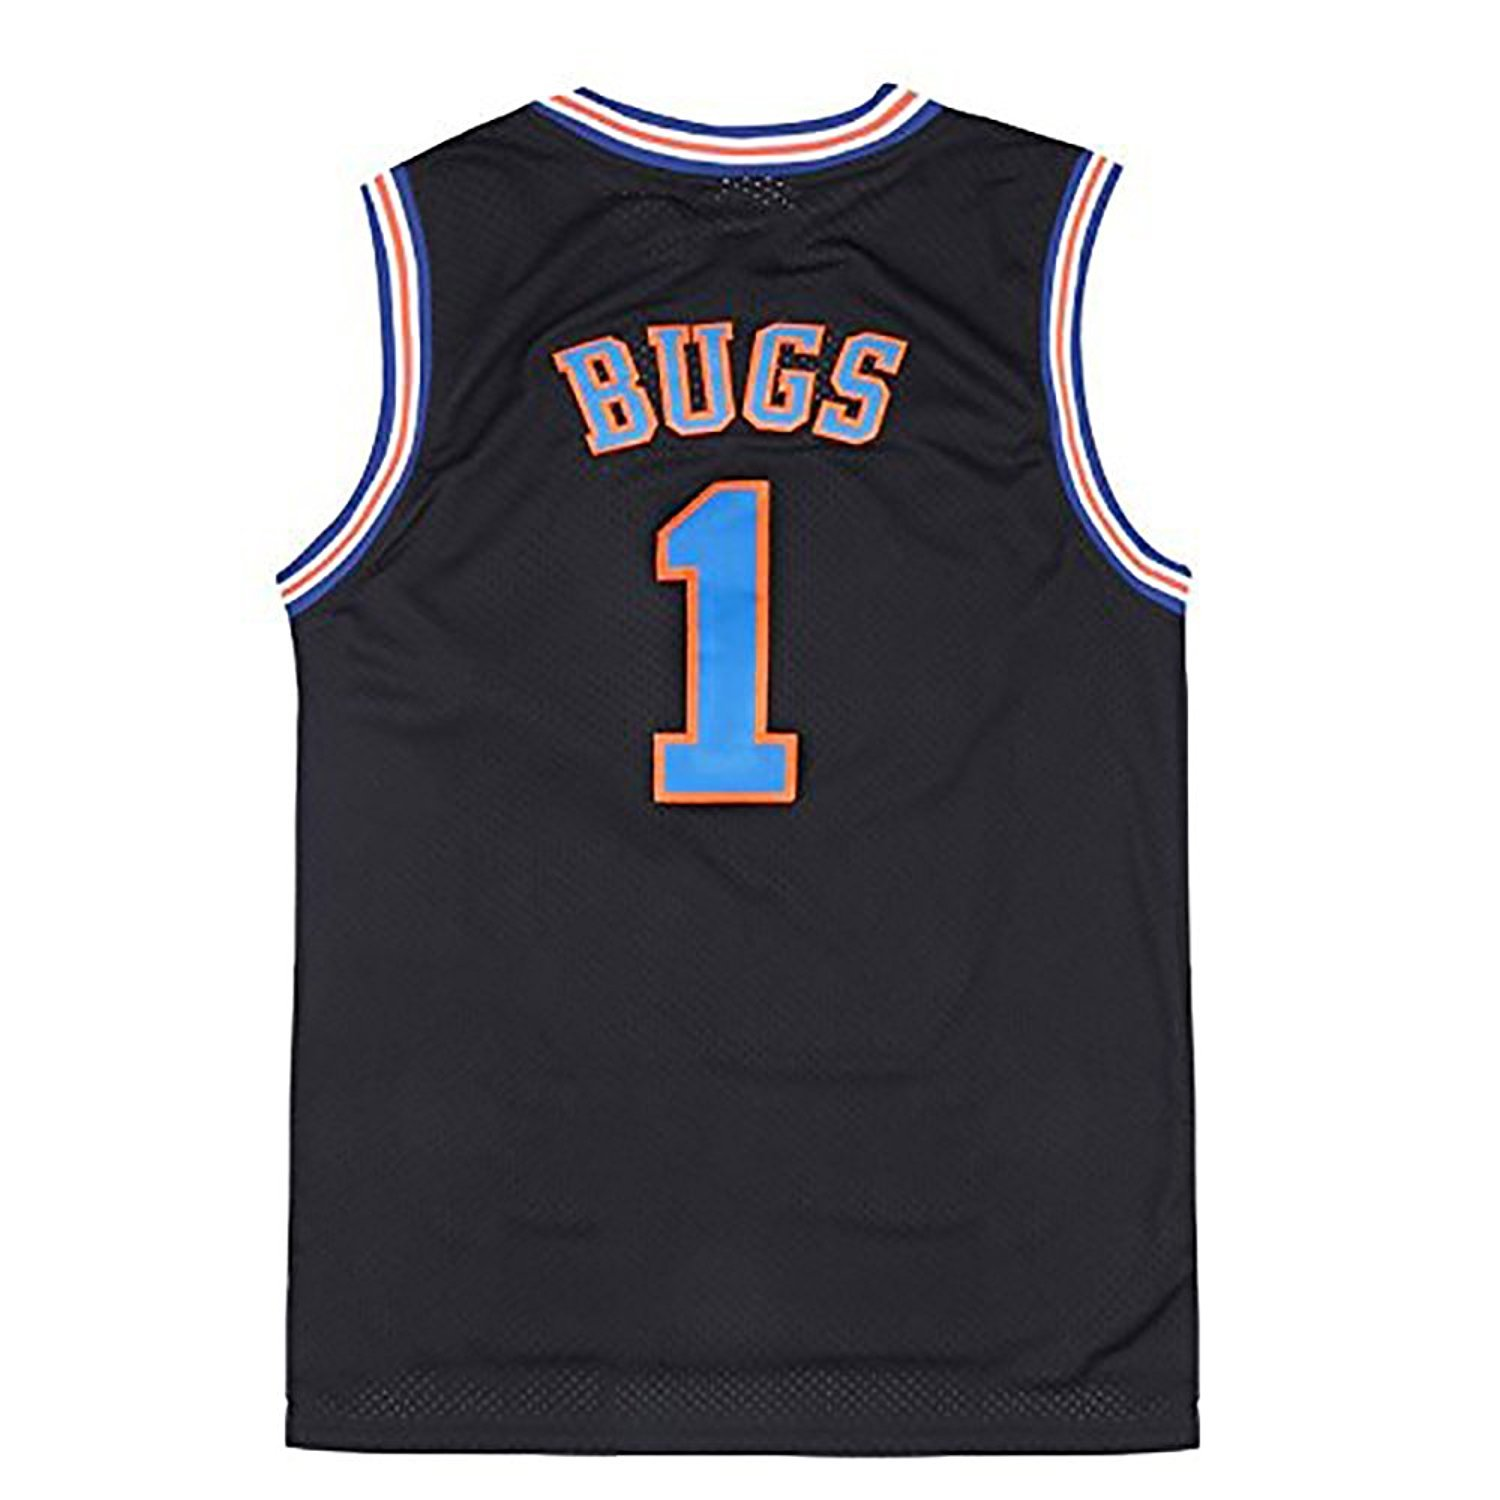 Borolin Mens Basketball Jersey Bugs Bunny #1 Space Jam Jersey White